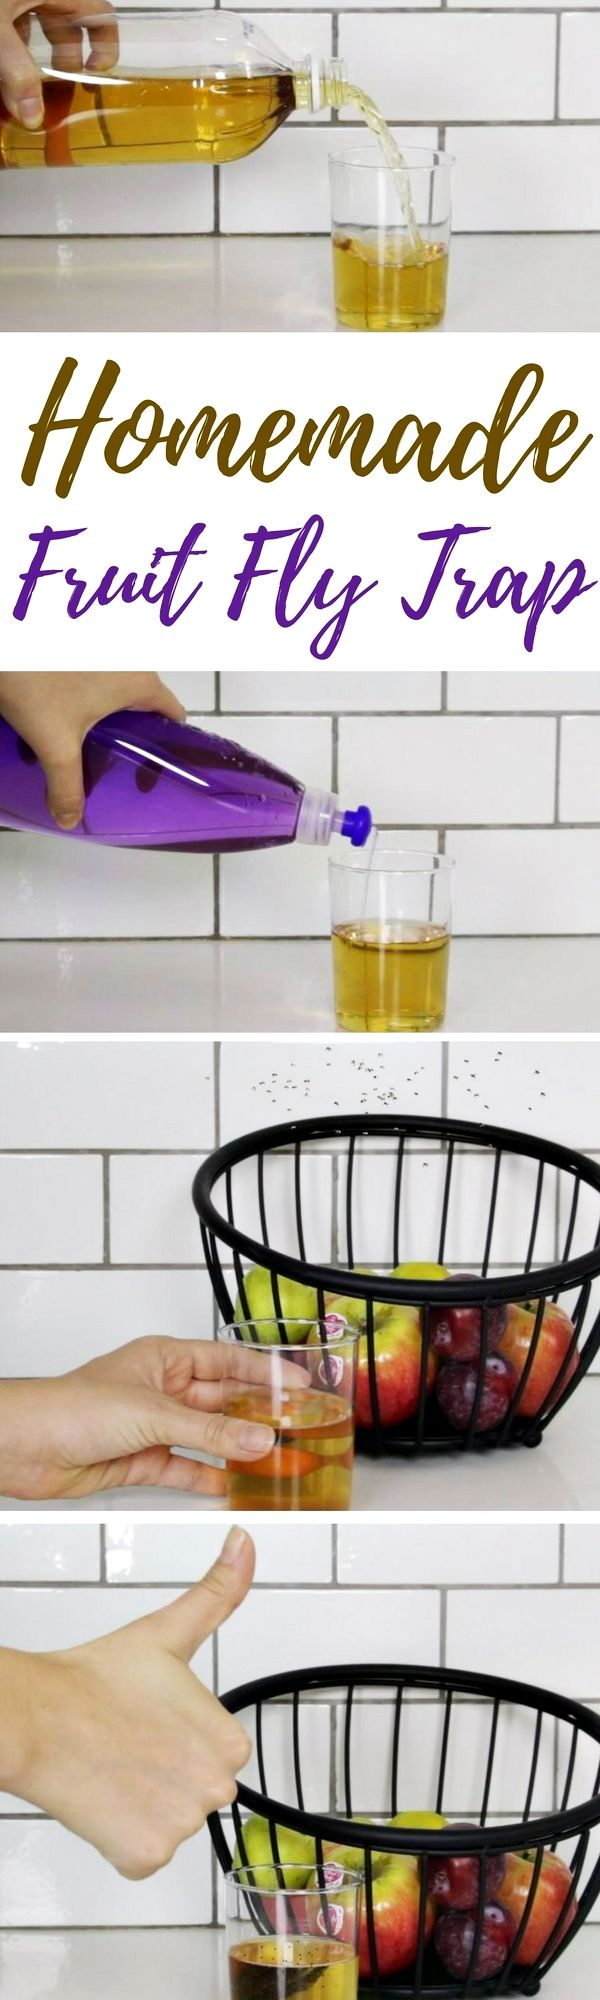 natural catch fruit fly traps instructions